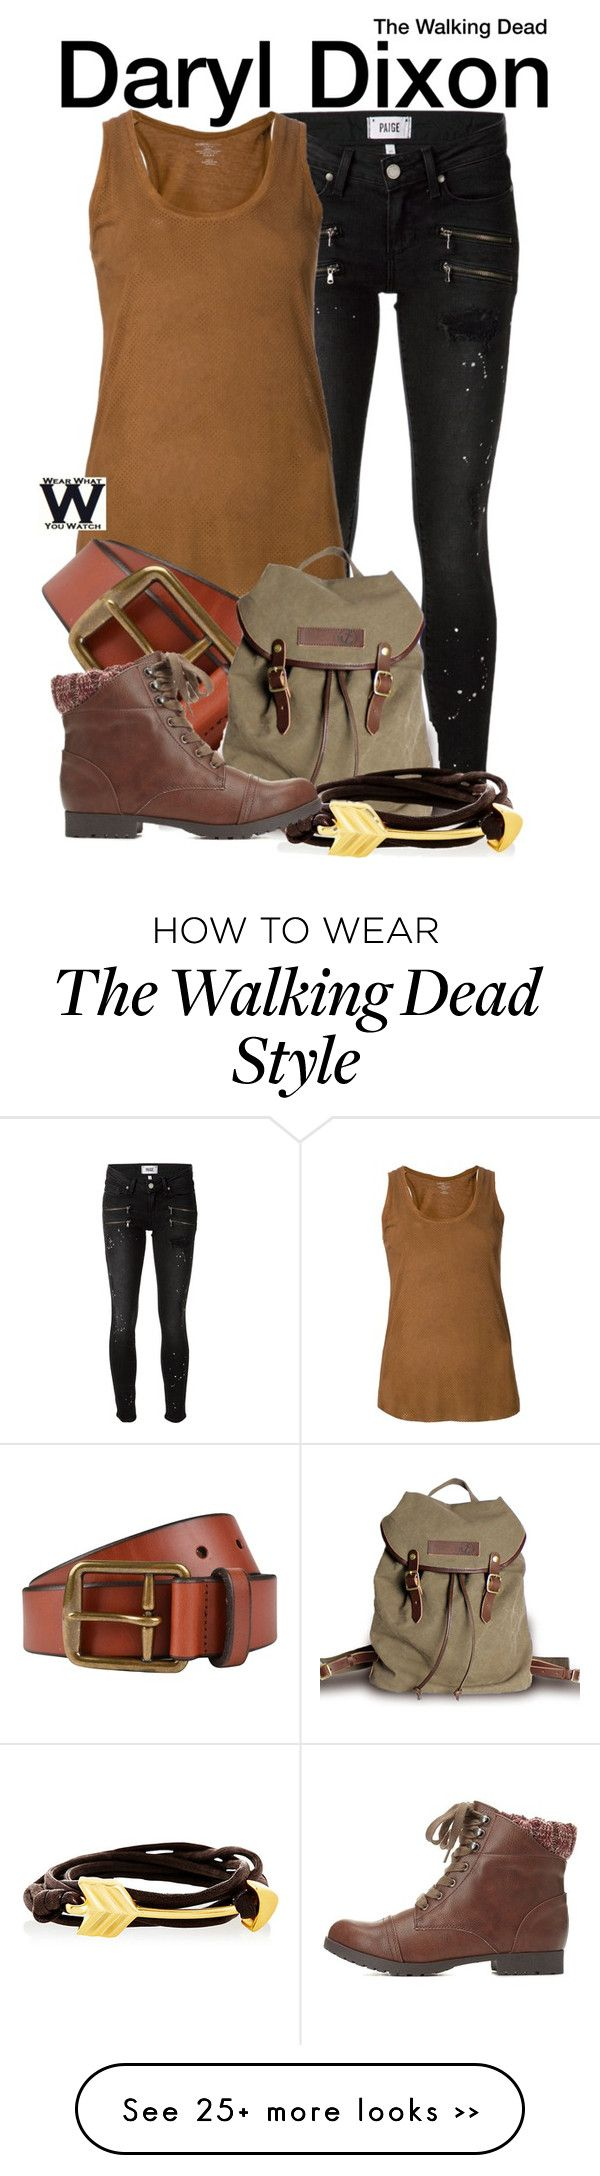 """The Walking Dead"" by wearwhatyouwatch on Polyvore"